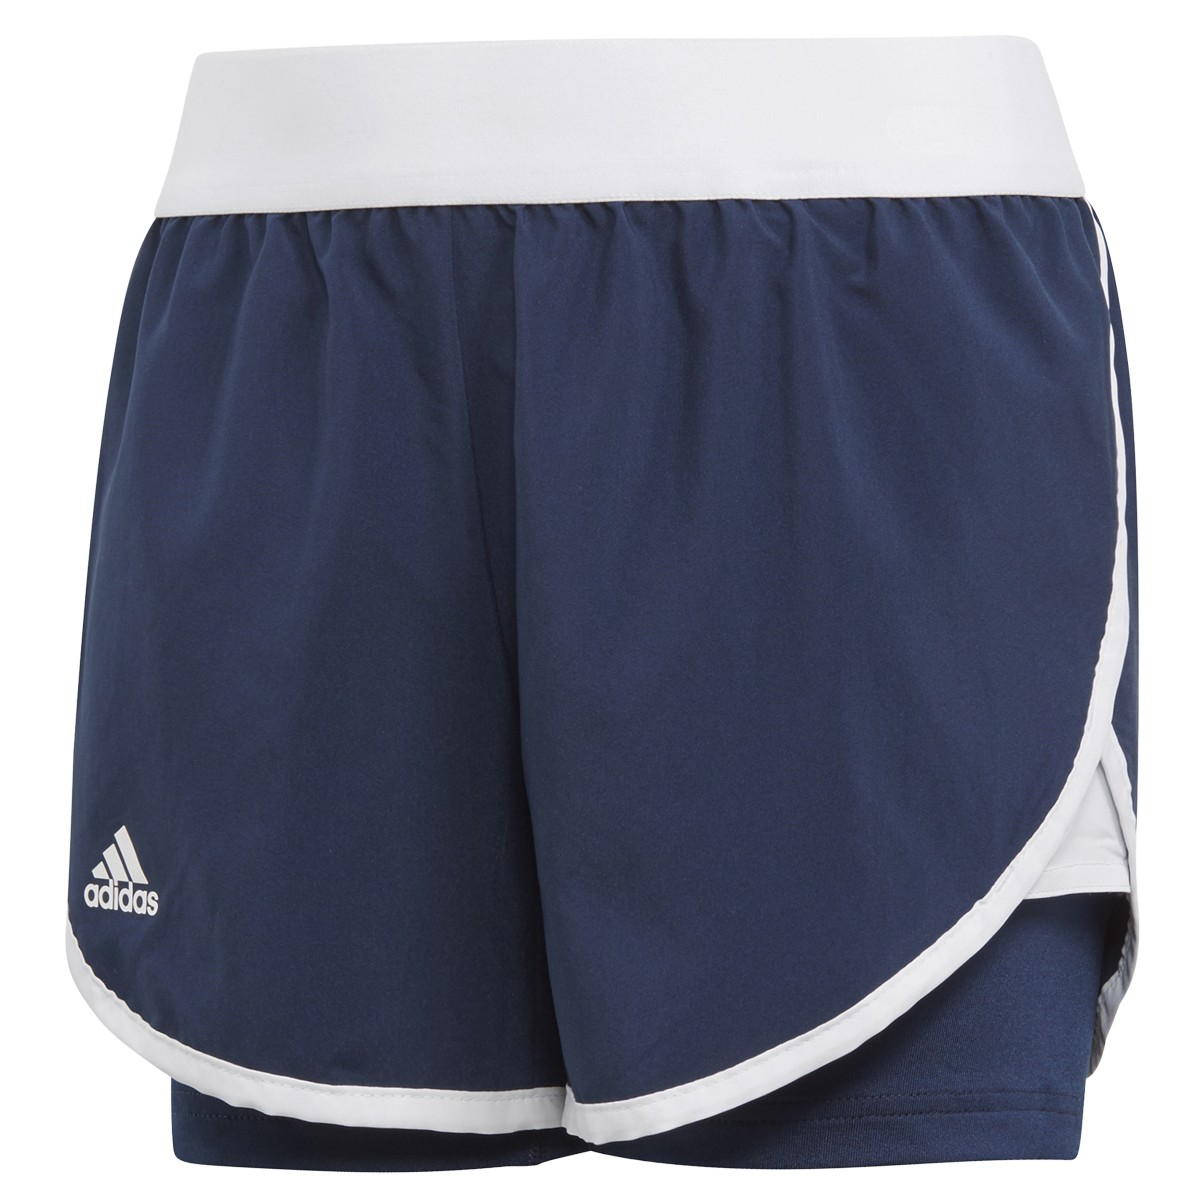 Club Adidas Short Tennispro Meisjes Junior 04xZq8U